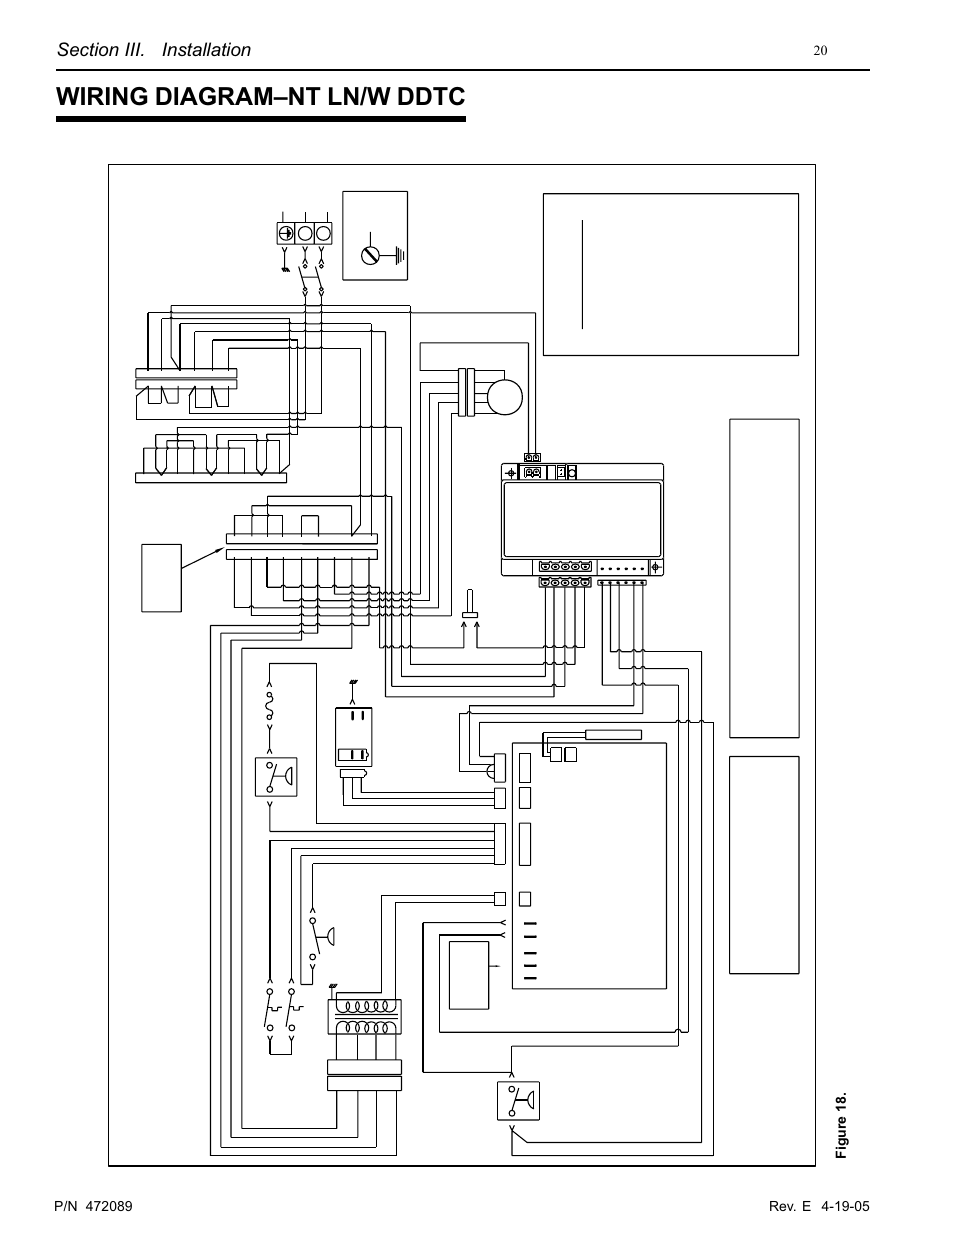 [WRG-1835] P15 Wiring Diagram